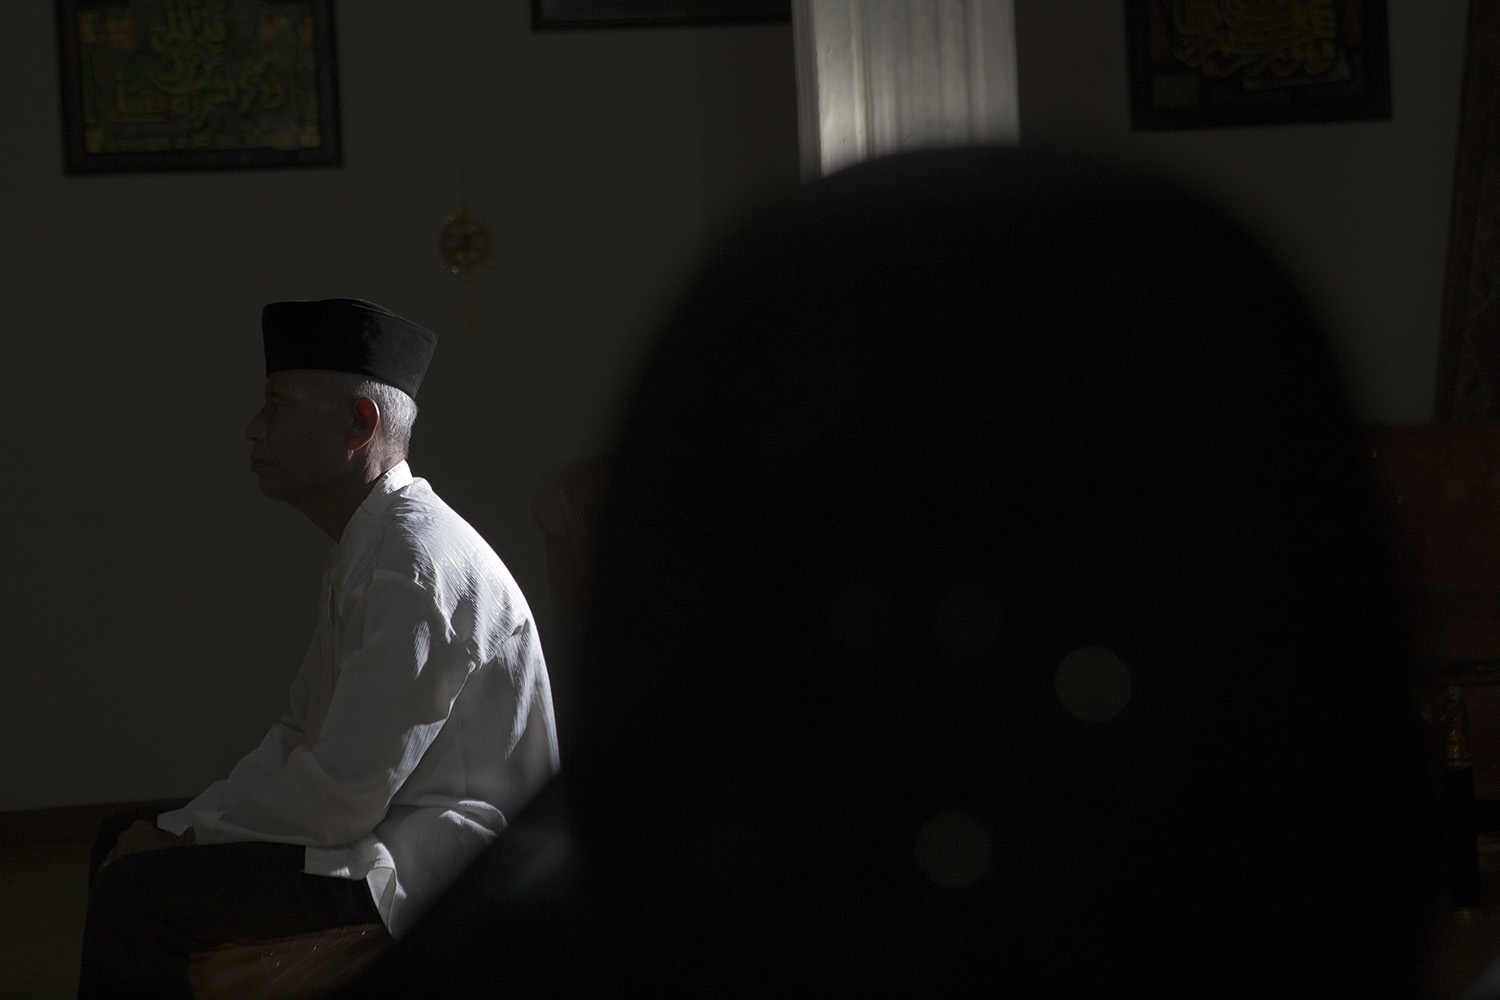 When he's not teaching silat, Imam spends evenings in silence to train his senses. JP/Ramadhani